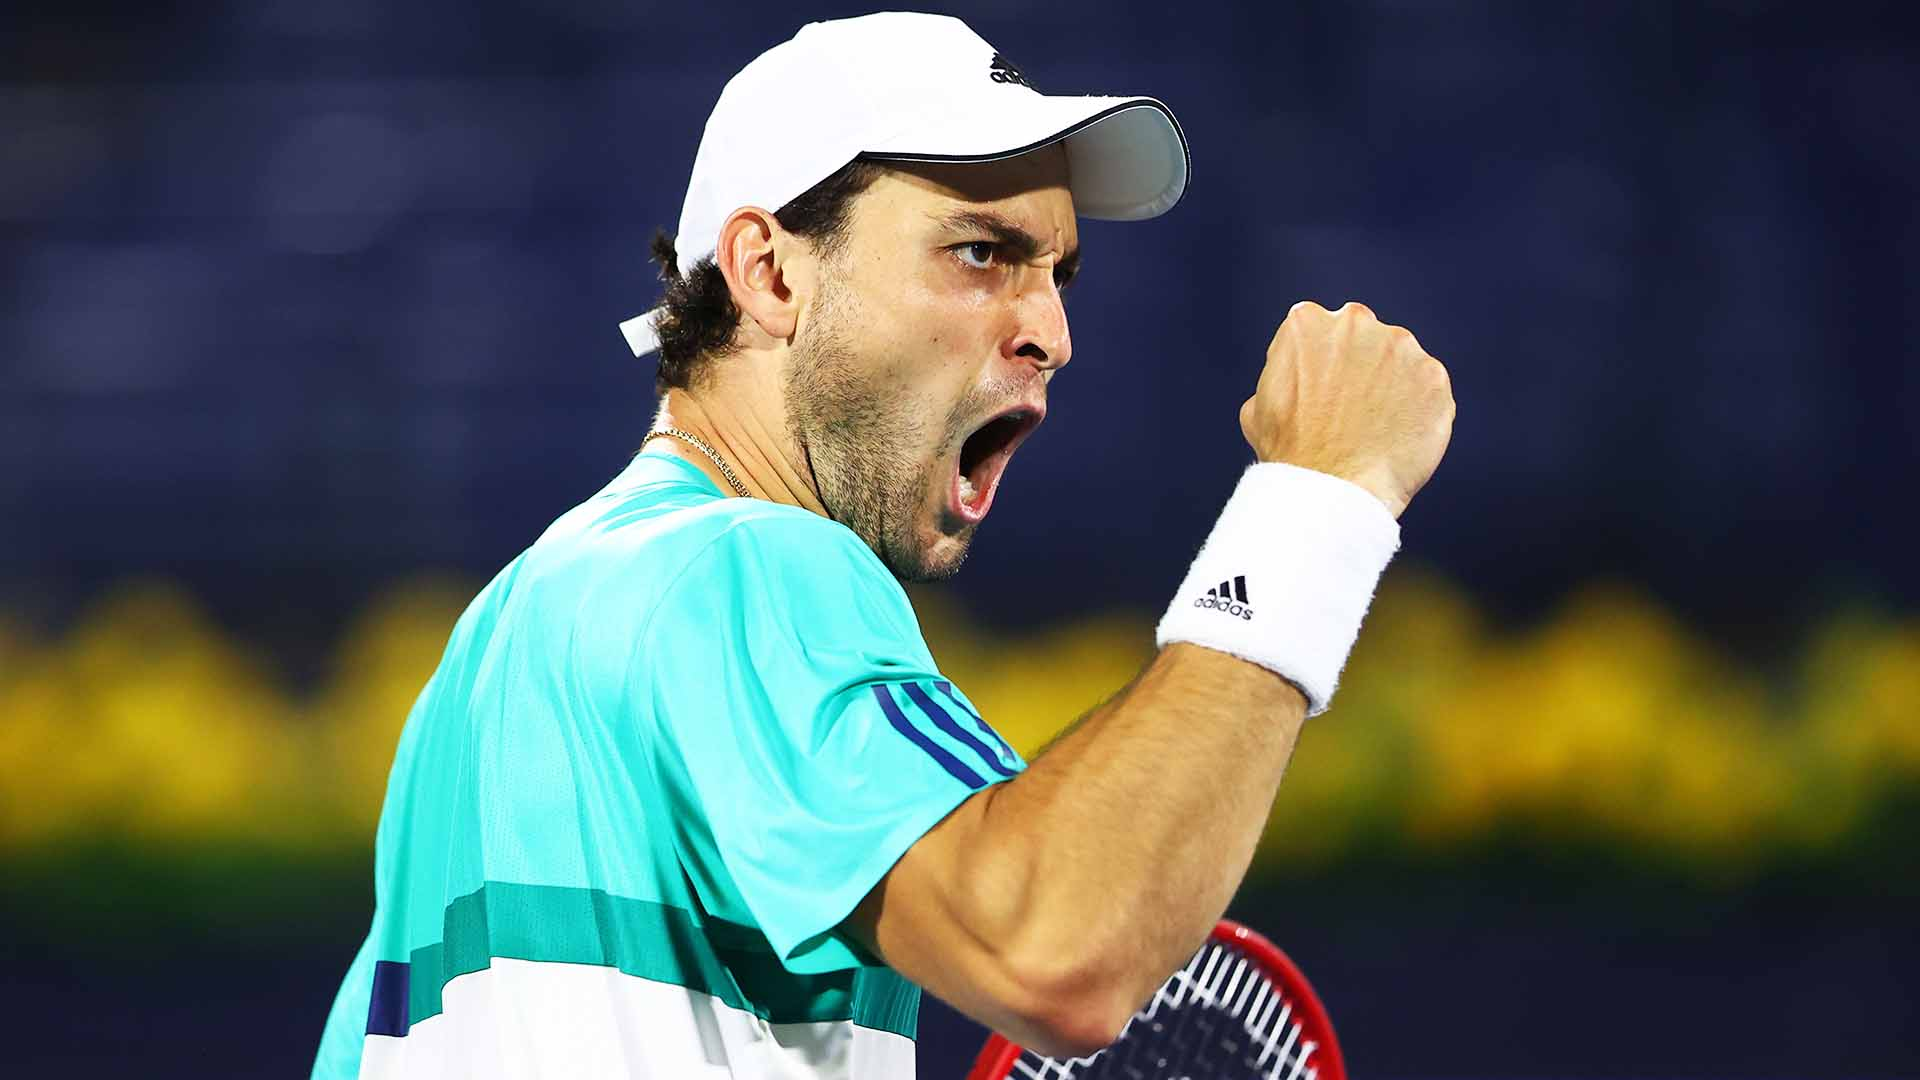 DUBAI, UNITED ARAB EMIRATES - MARCH 18: Aslan Karatsev of Russia celebrates in his Quarter-Final singles match against Jannik Sinner of Italy during Day Twelve of the Dubai Duty Free Tennis Championships at Dubai Duty Free Tennis Stadium on March 18, 2021 in Dubai, United Arab Emirates. (Photo by Francois Nel/Getty Images)